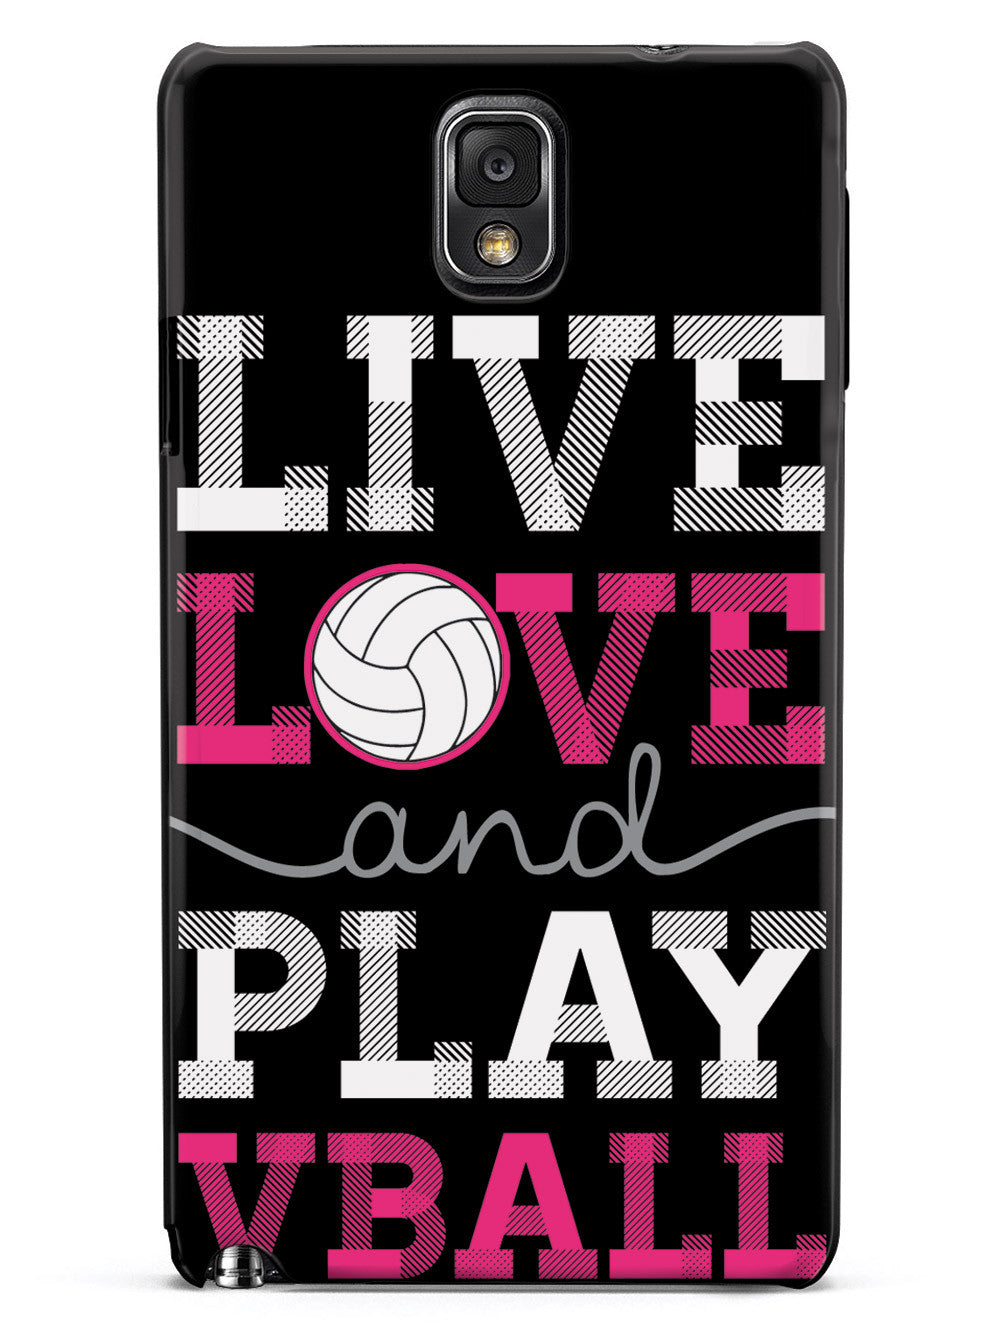 Live Love & Play Vball Case